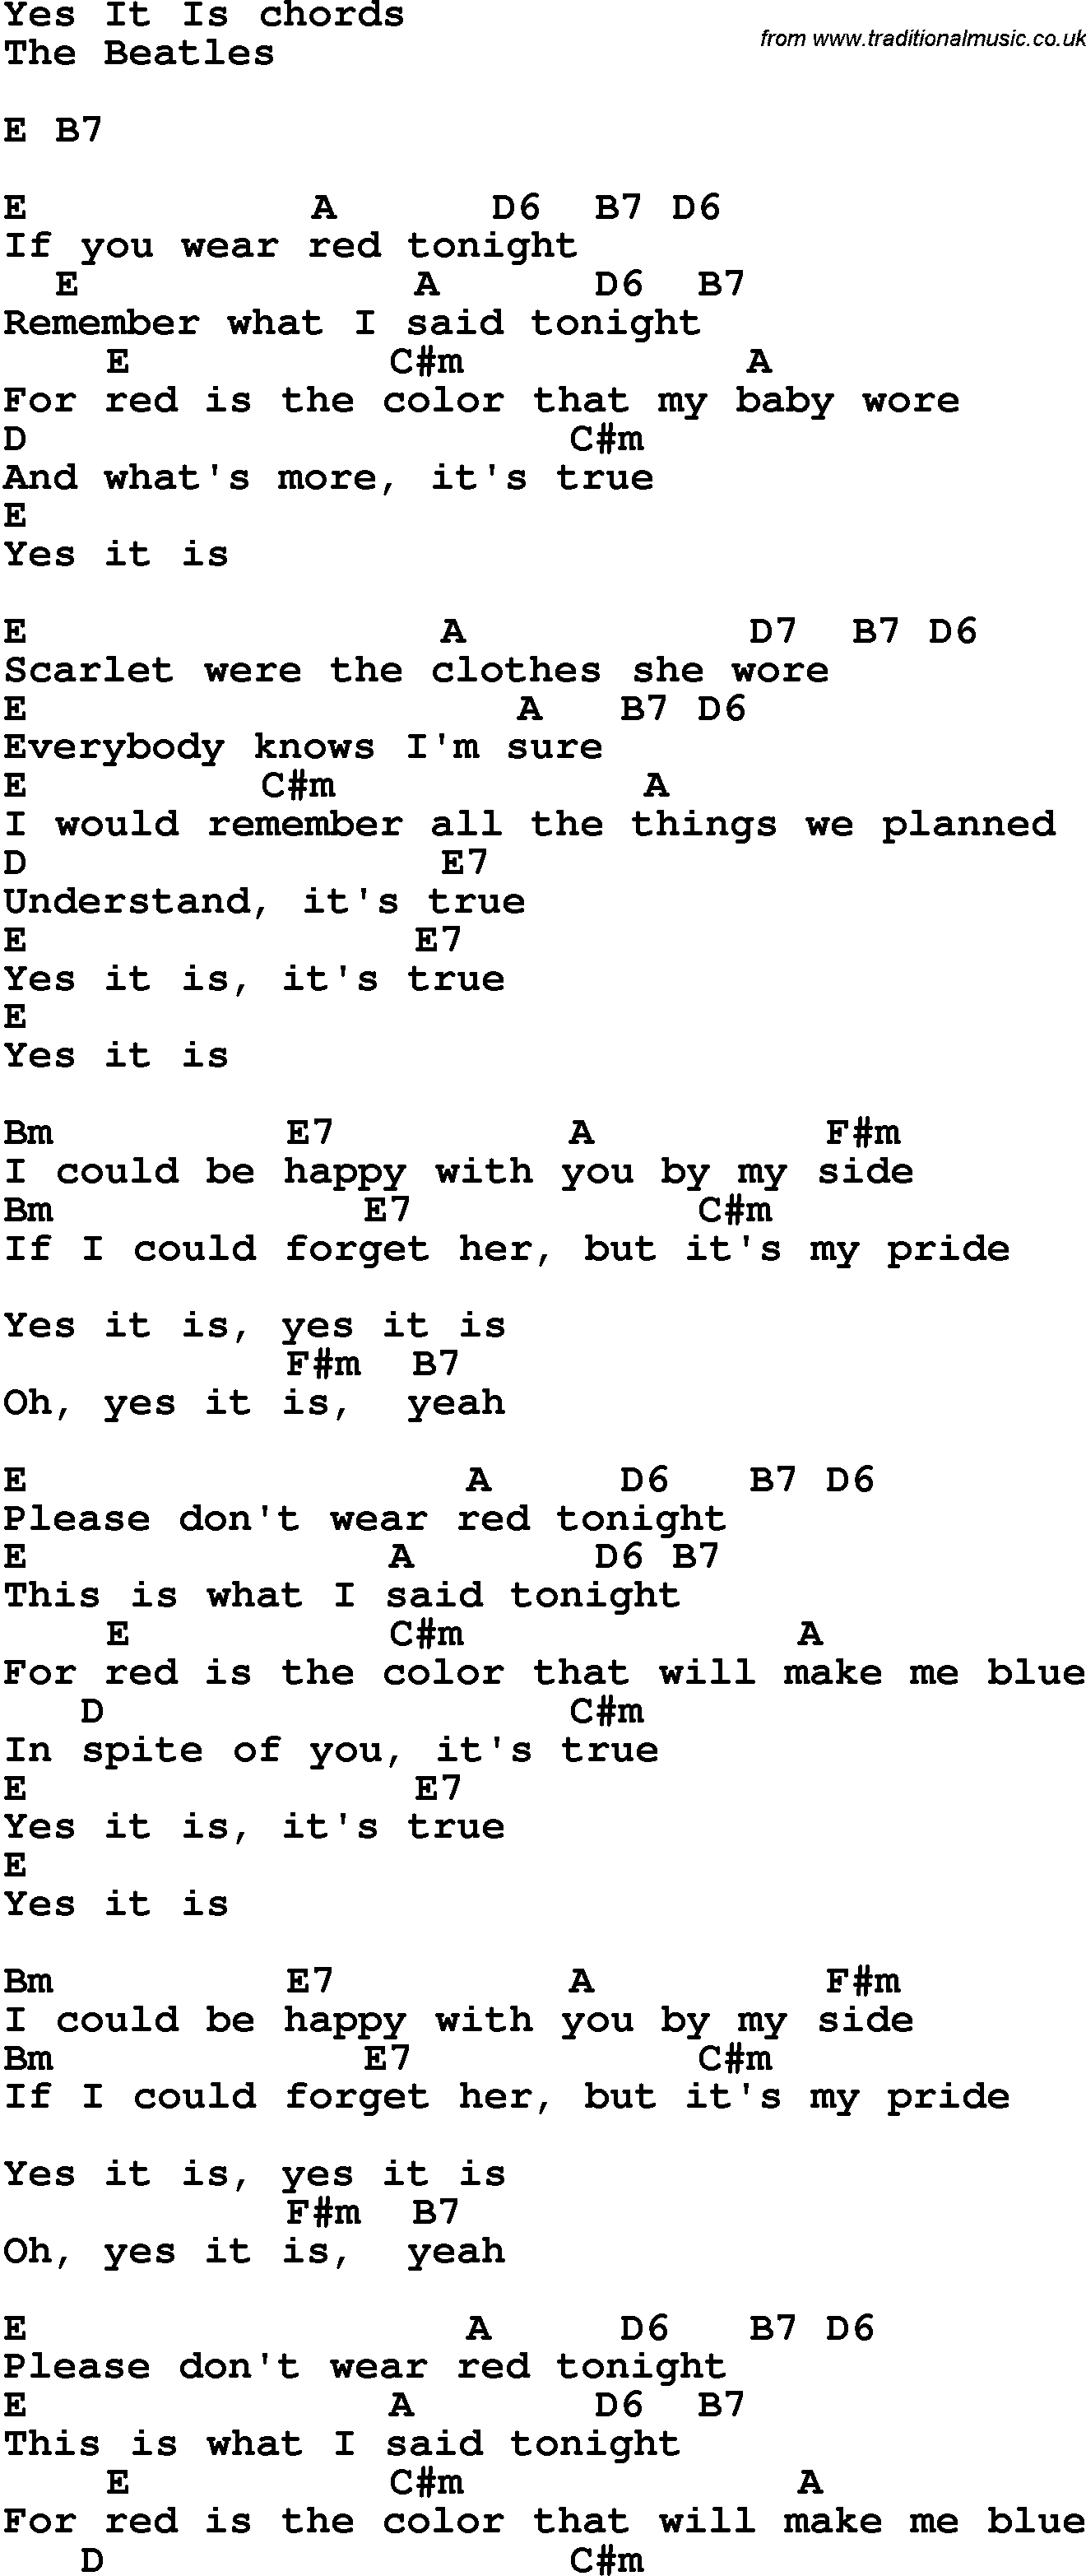 Song lyrics with guitar chords for Yes It Is